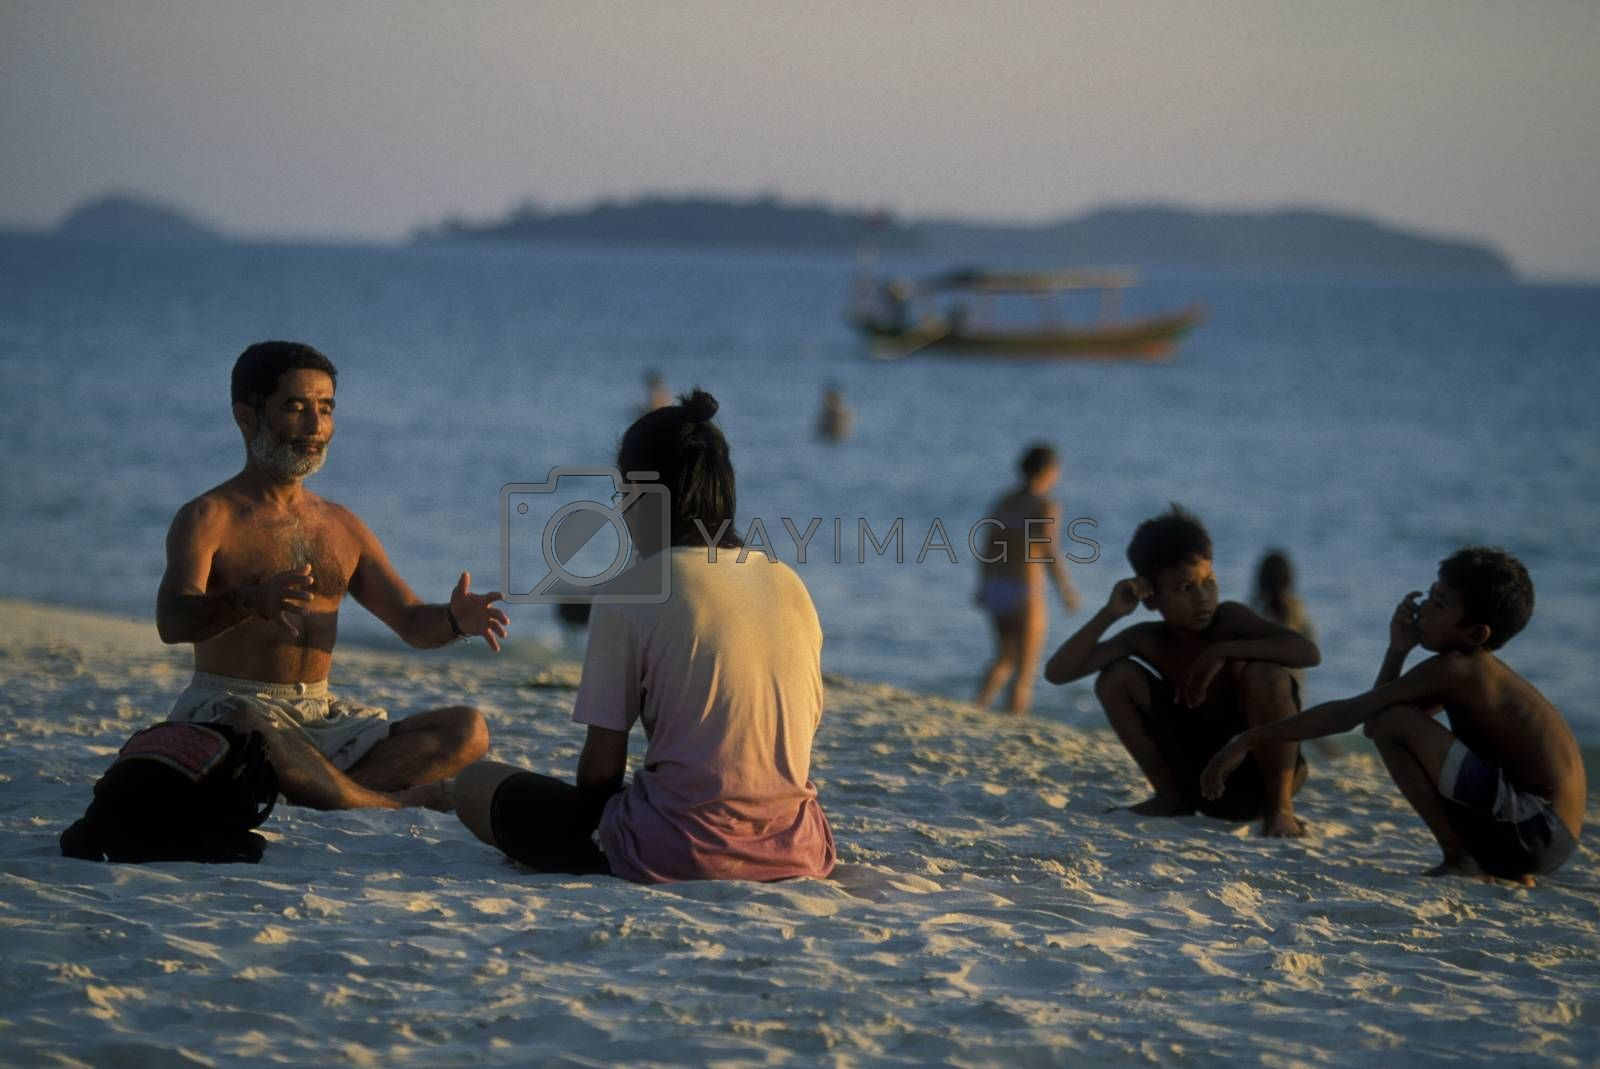 the beach at the coast of the Town of Sihanoukville in cambodia in southeastasia.